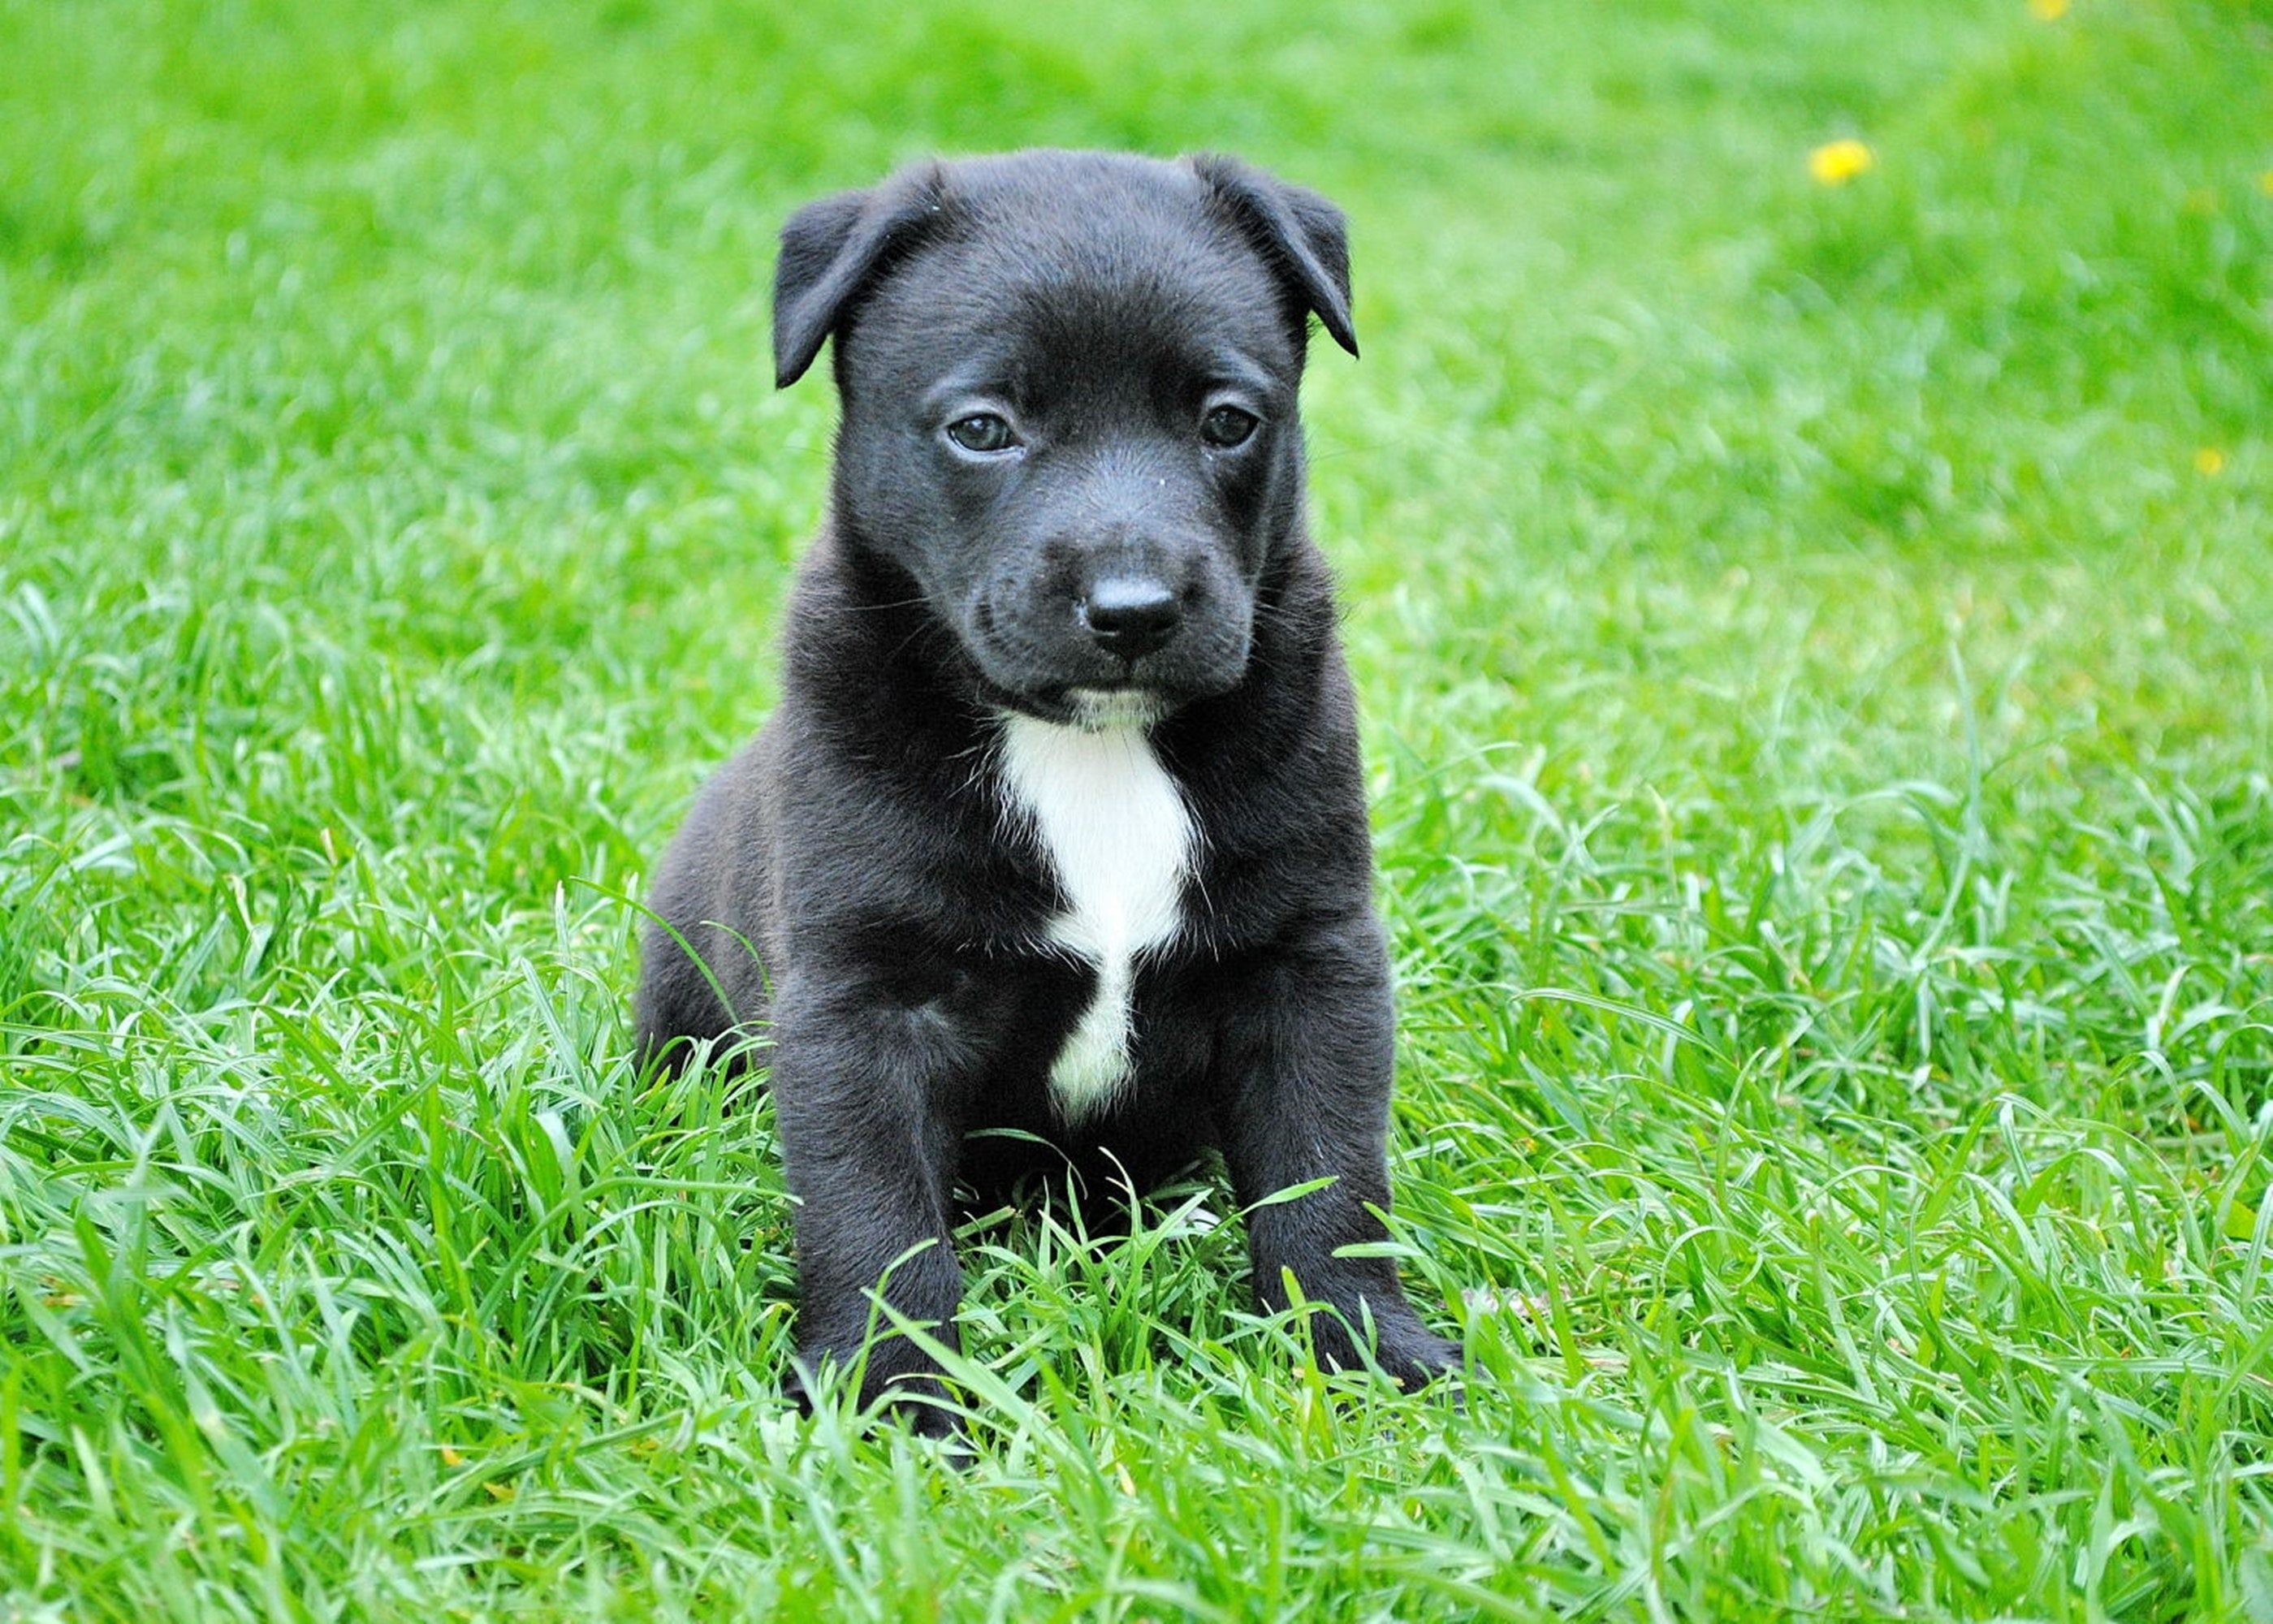 Black and White Short Coated Puppy Sitting on Green Grass